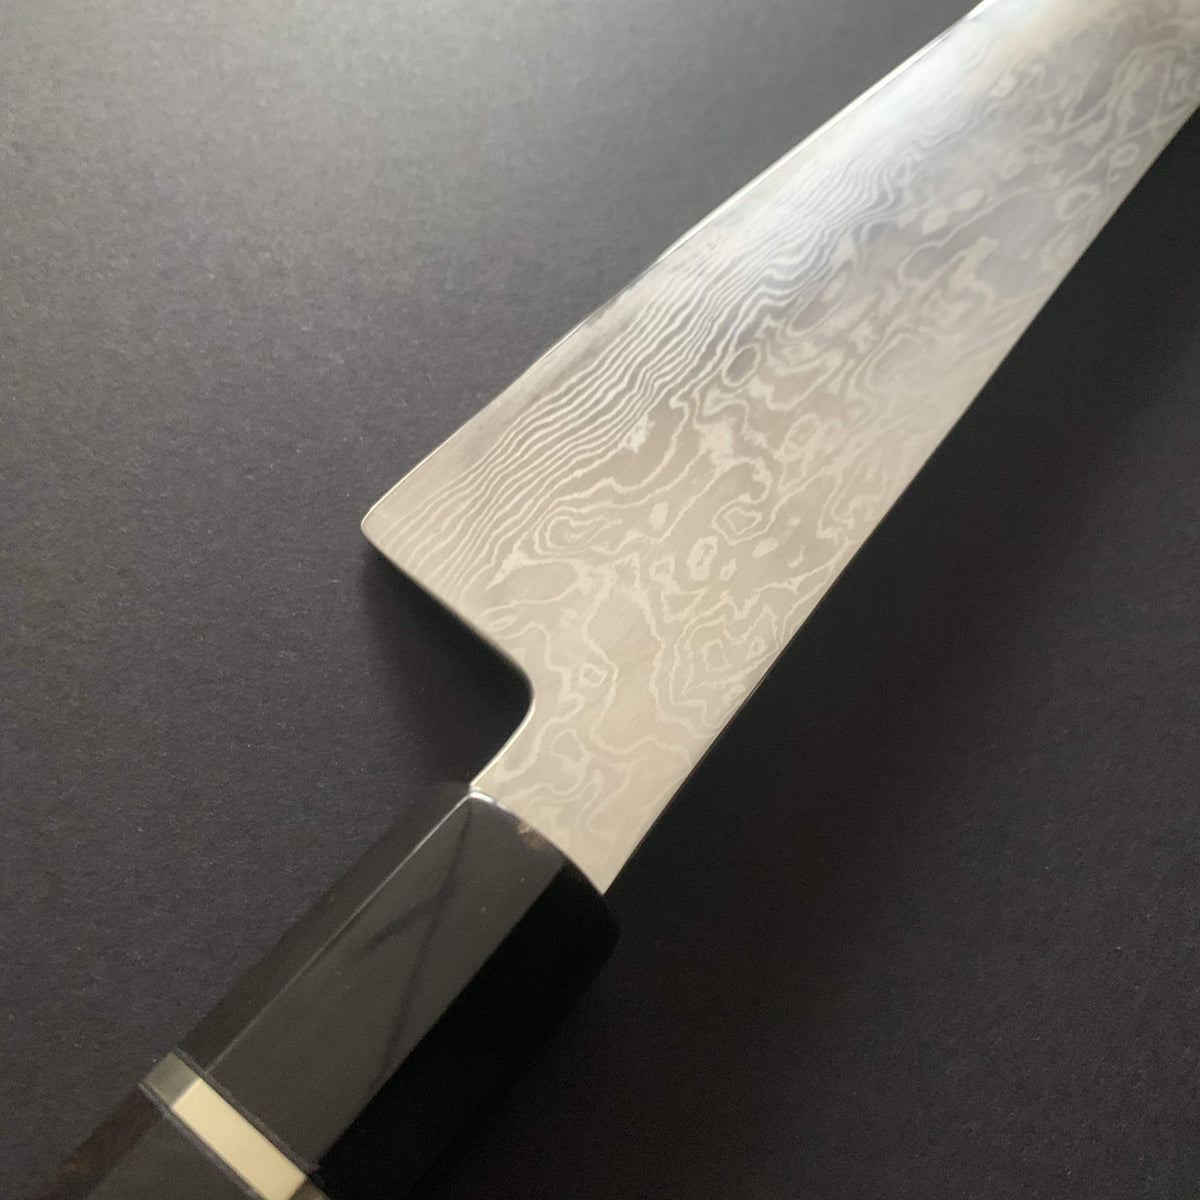 Gyuto knife, ATS34 powder steel, damascus finish - Tsukasa Hinoura